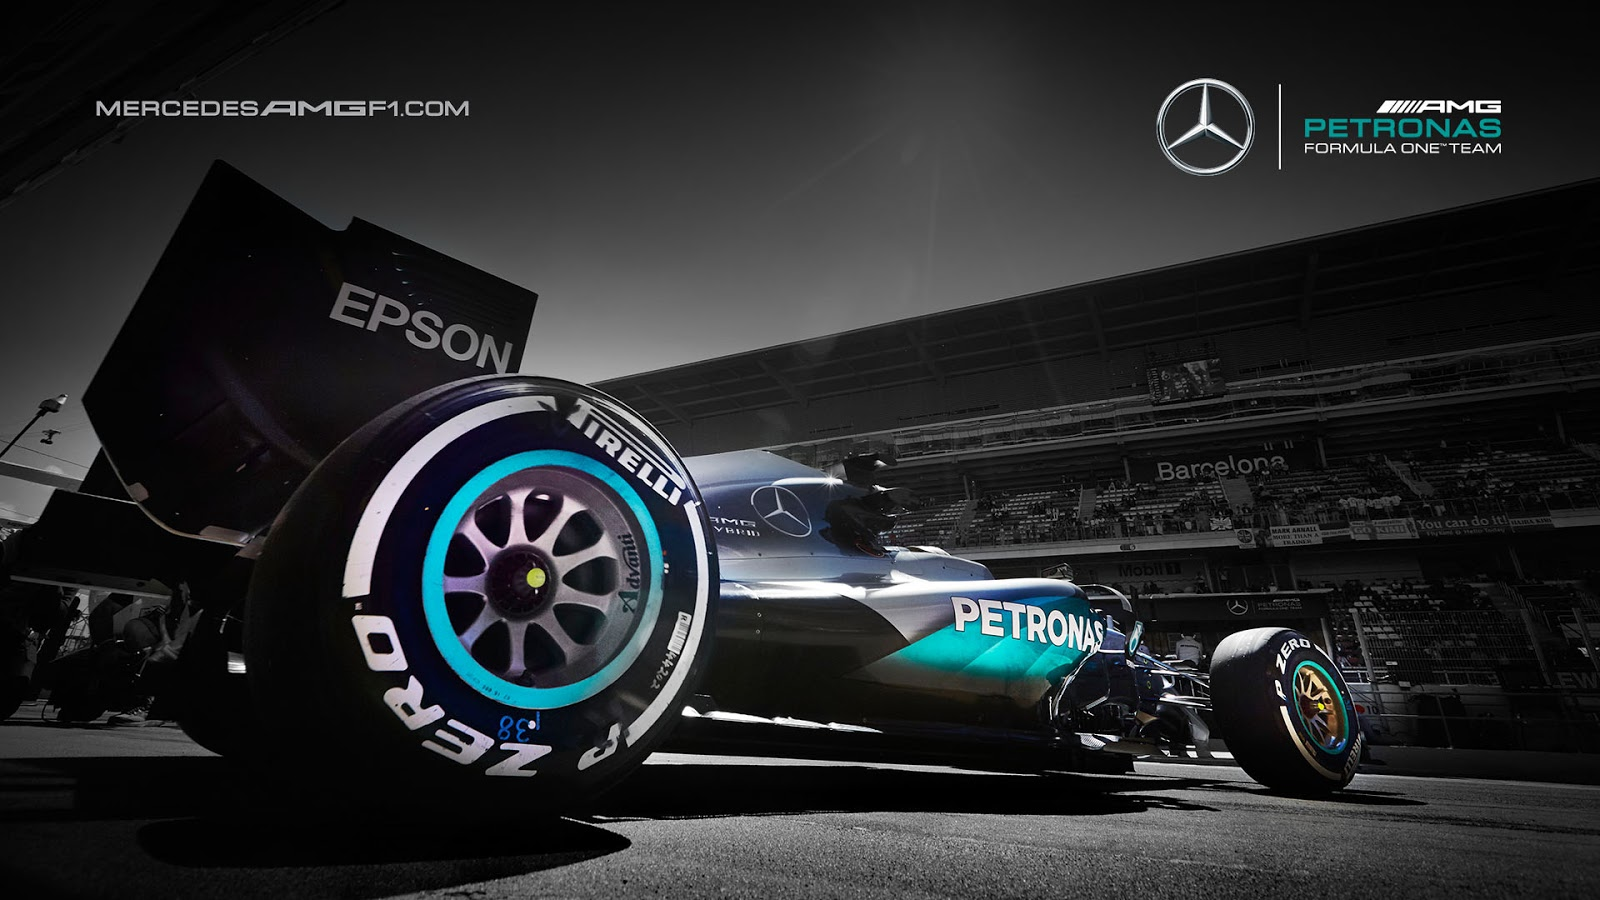 Mercedes Car Wallpapers For Windows 7 Mercedes Amg Petronas W07 2016 F1 Wallpaper Kfzoom